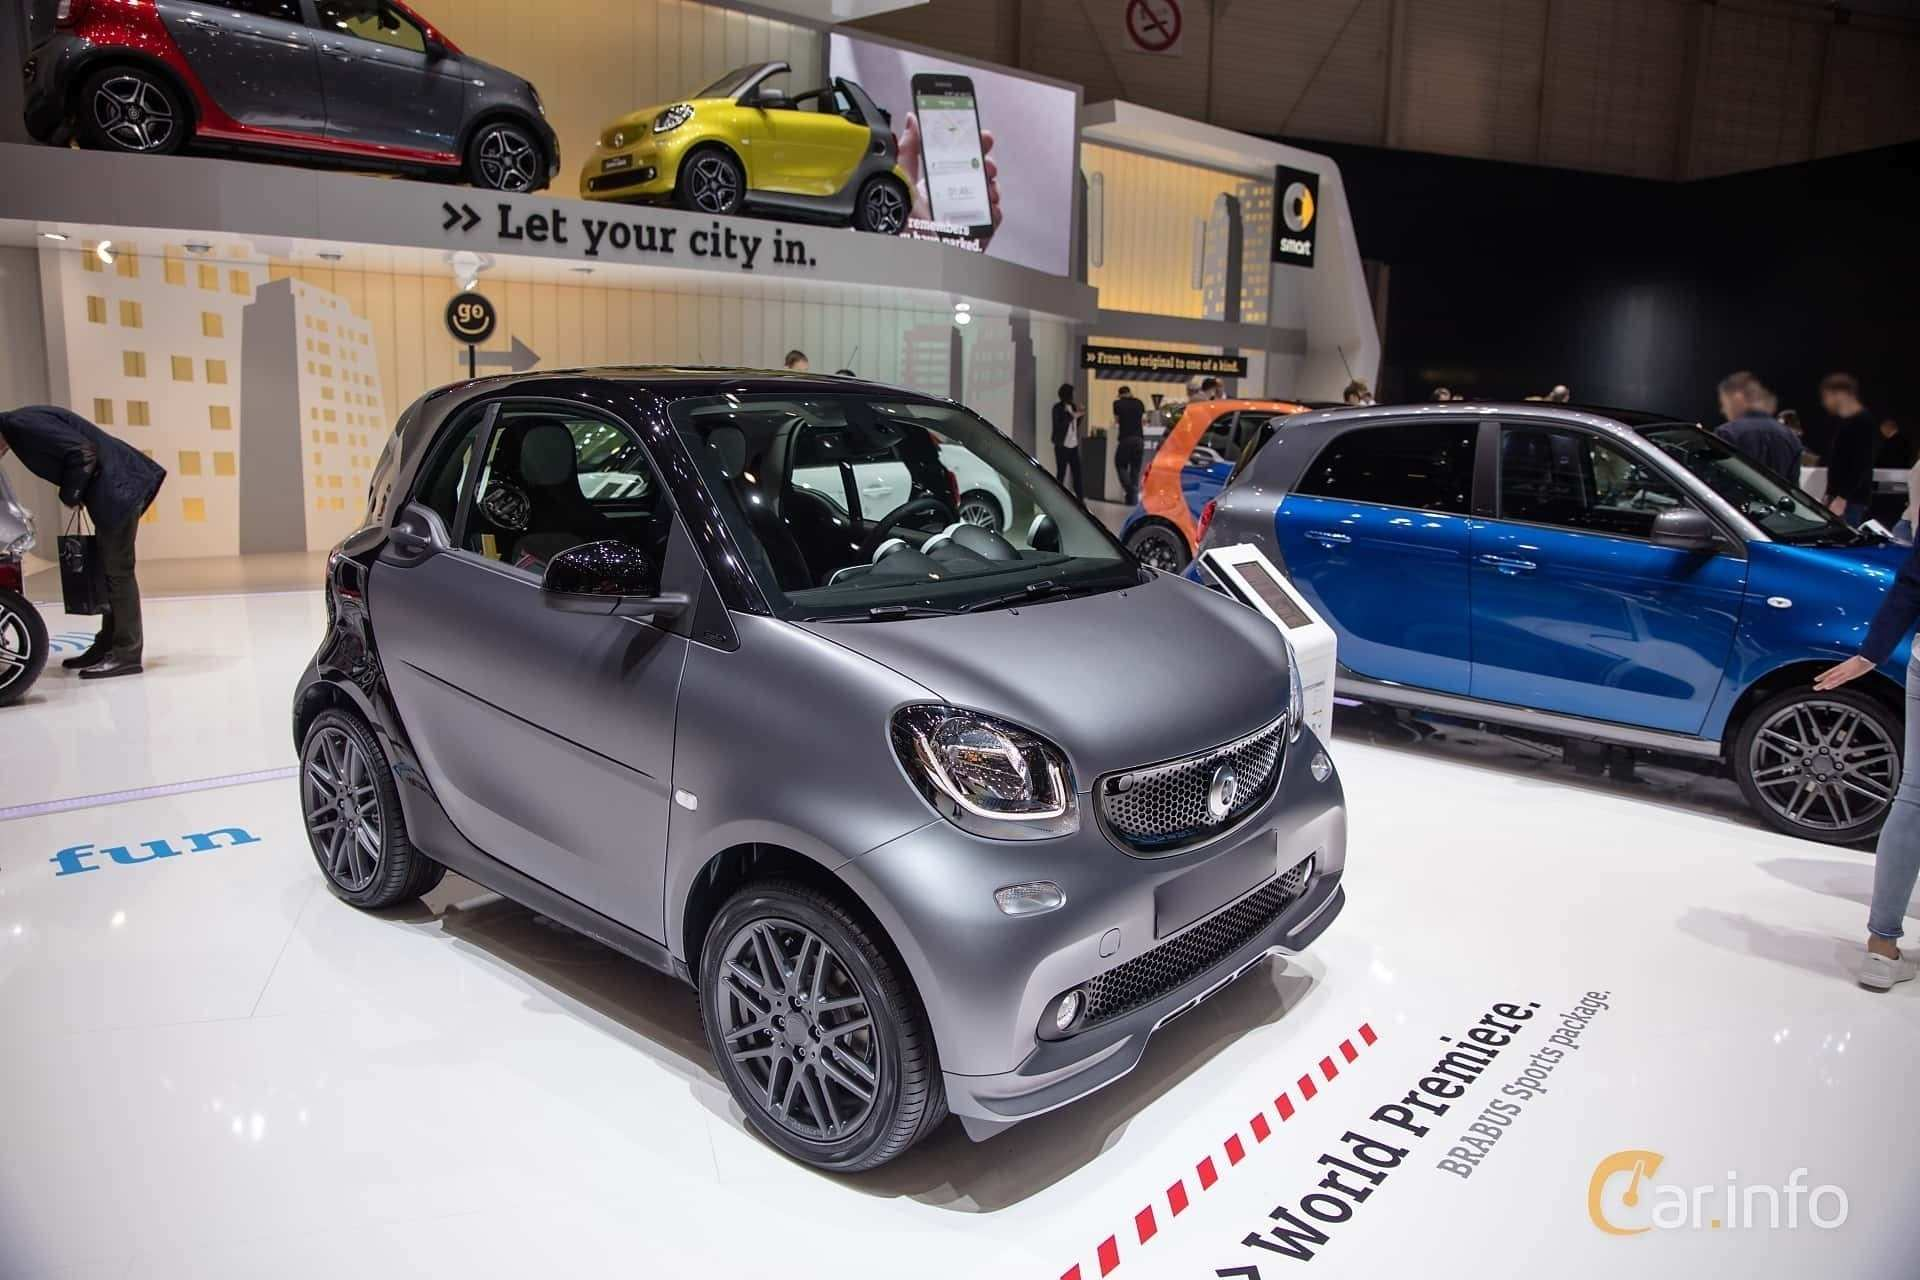 61 New 2020 Smart Fortwo Picture